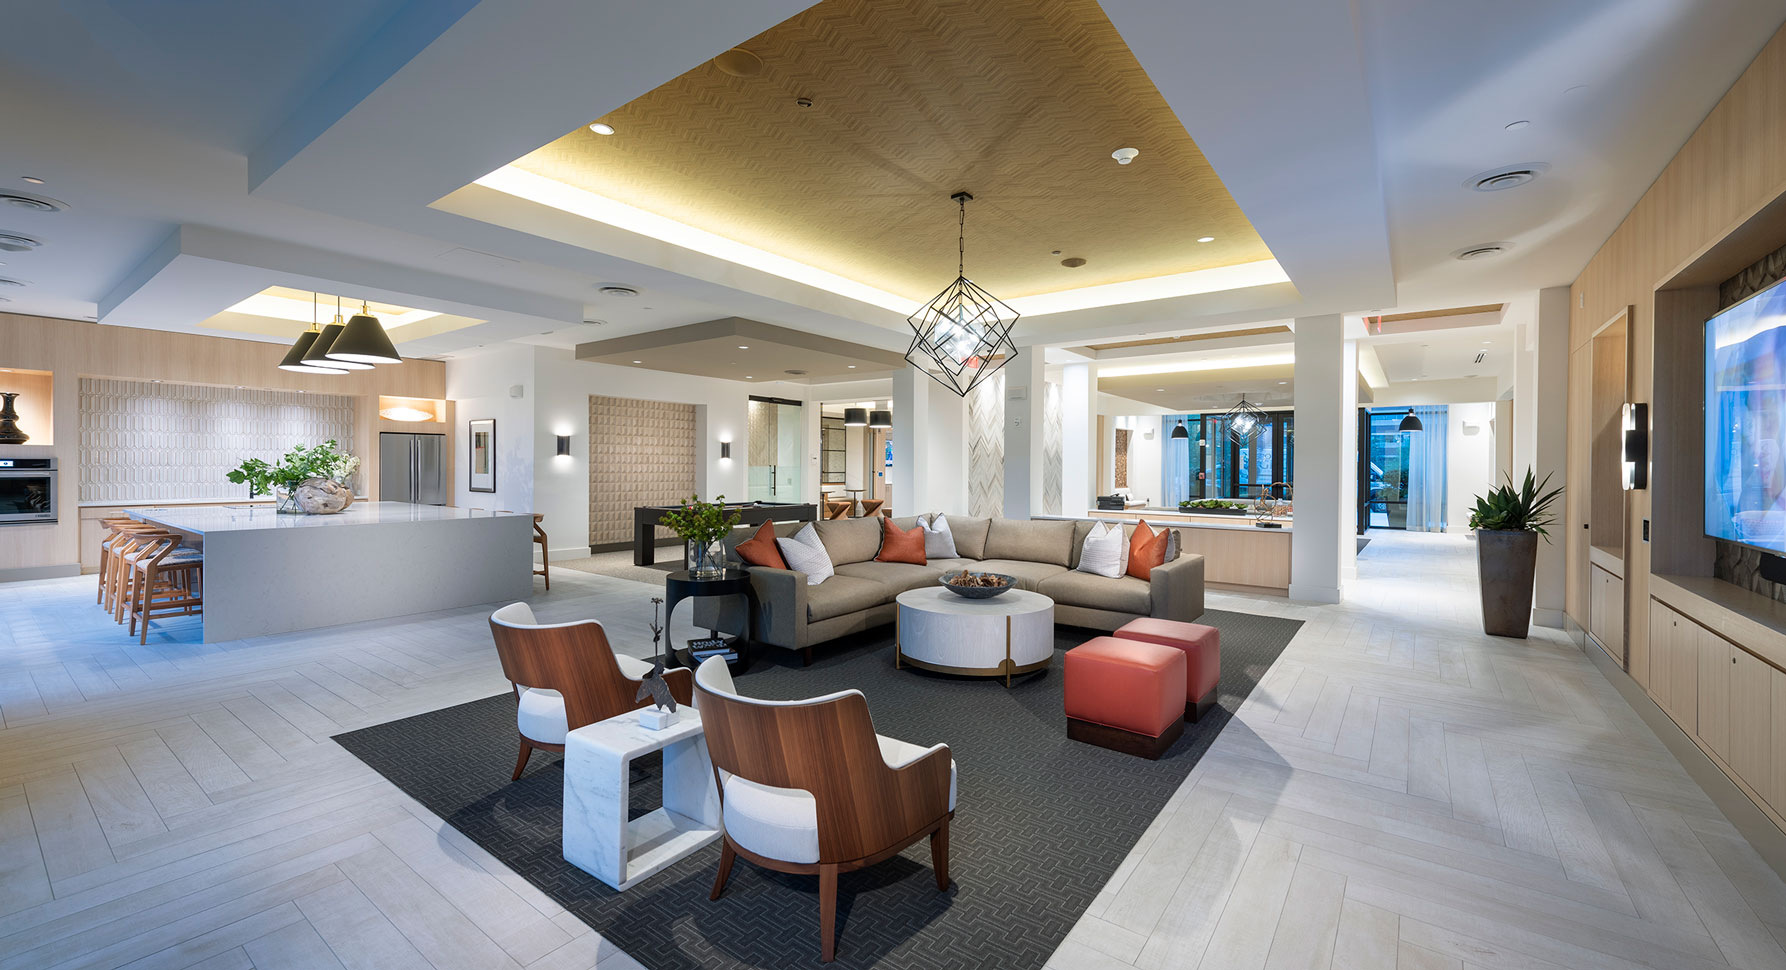 Clubhouse with variety of seating, pool table, kitchen with bar seating and designer lighting